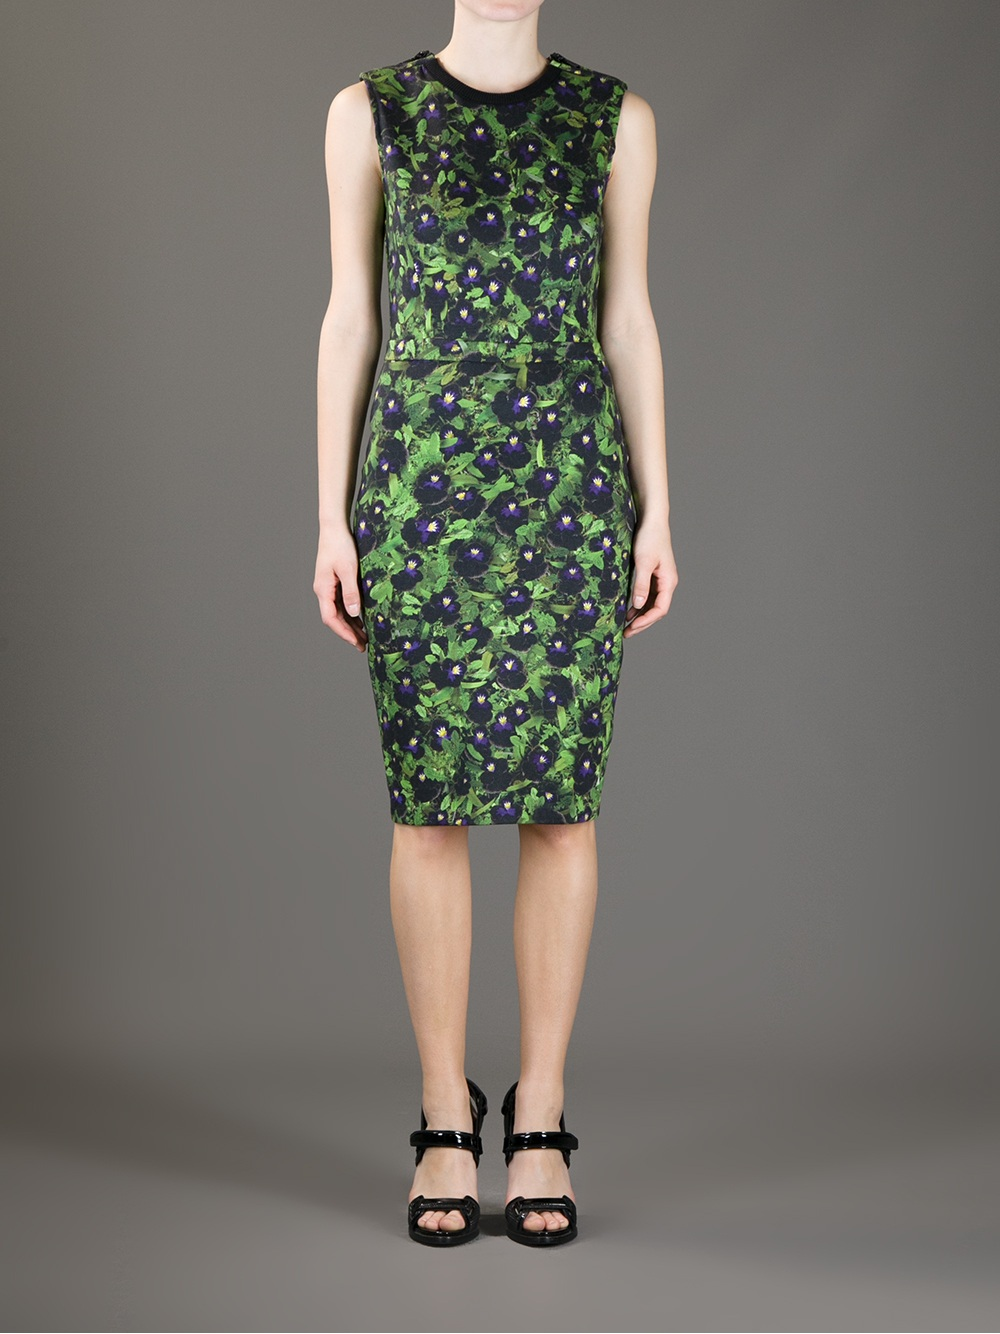 Lyst Givenchy Pansy Print Dress In Green